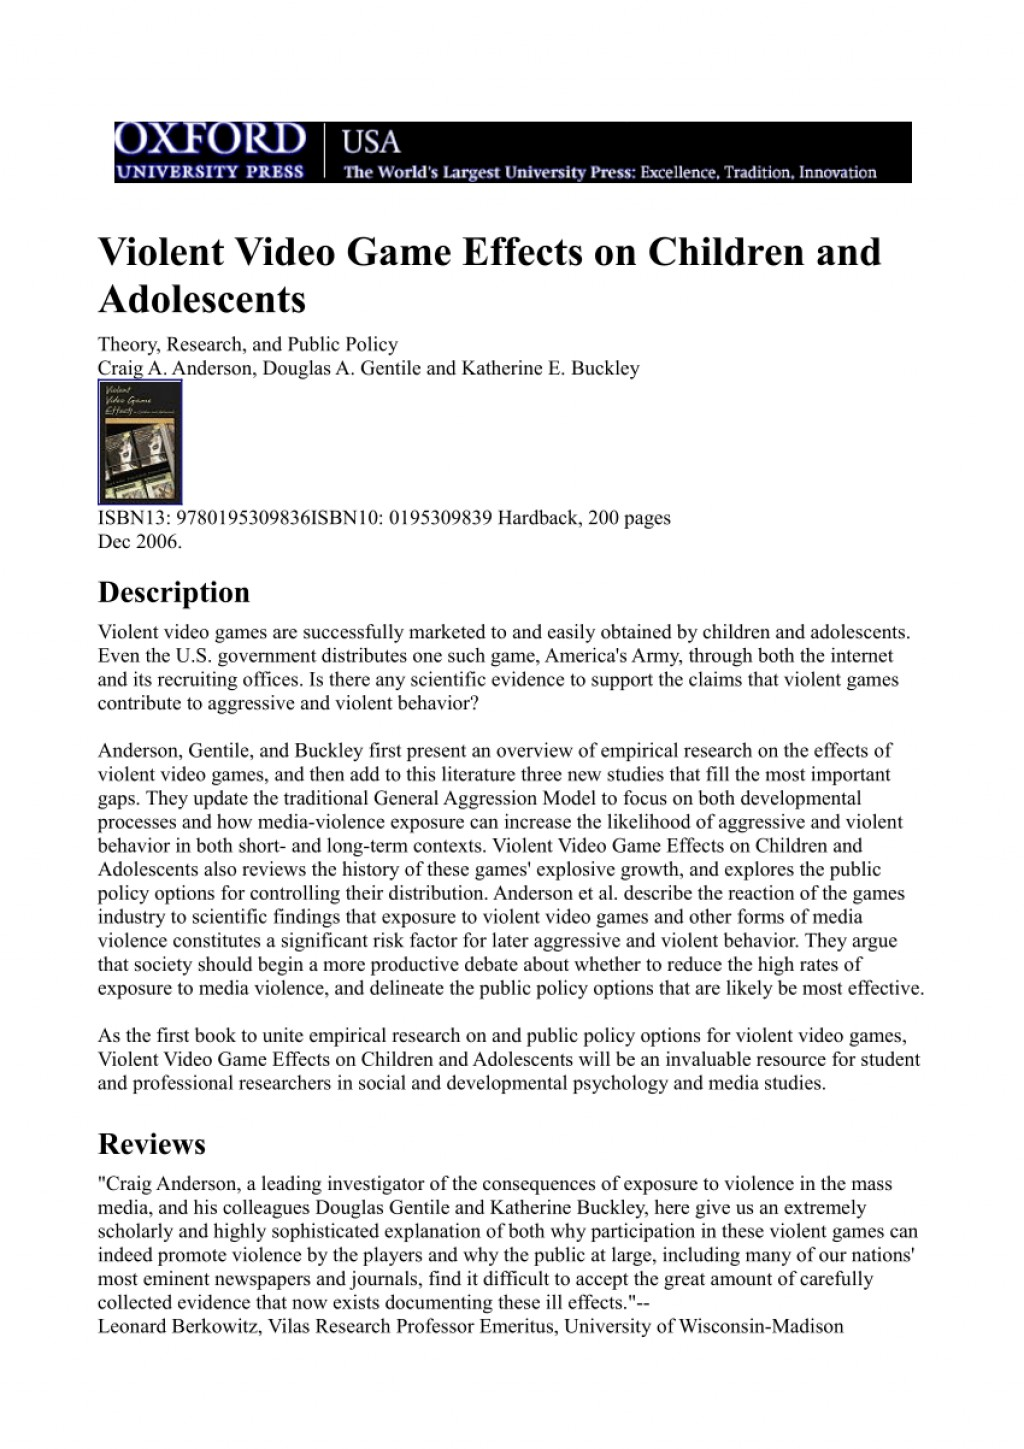 003 Negative Effects Of Video Games Essay Largepreview Top 10 The Good And Bad Positive Pdf Large